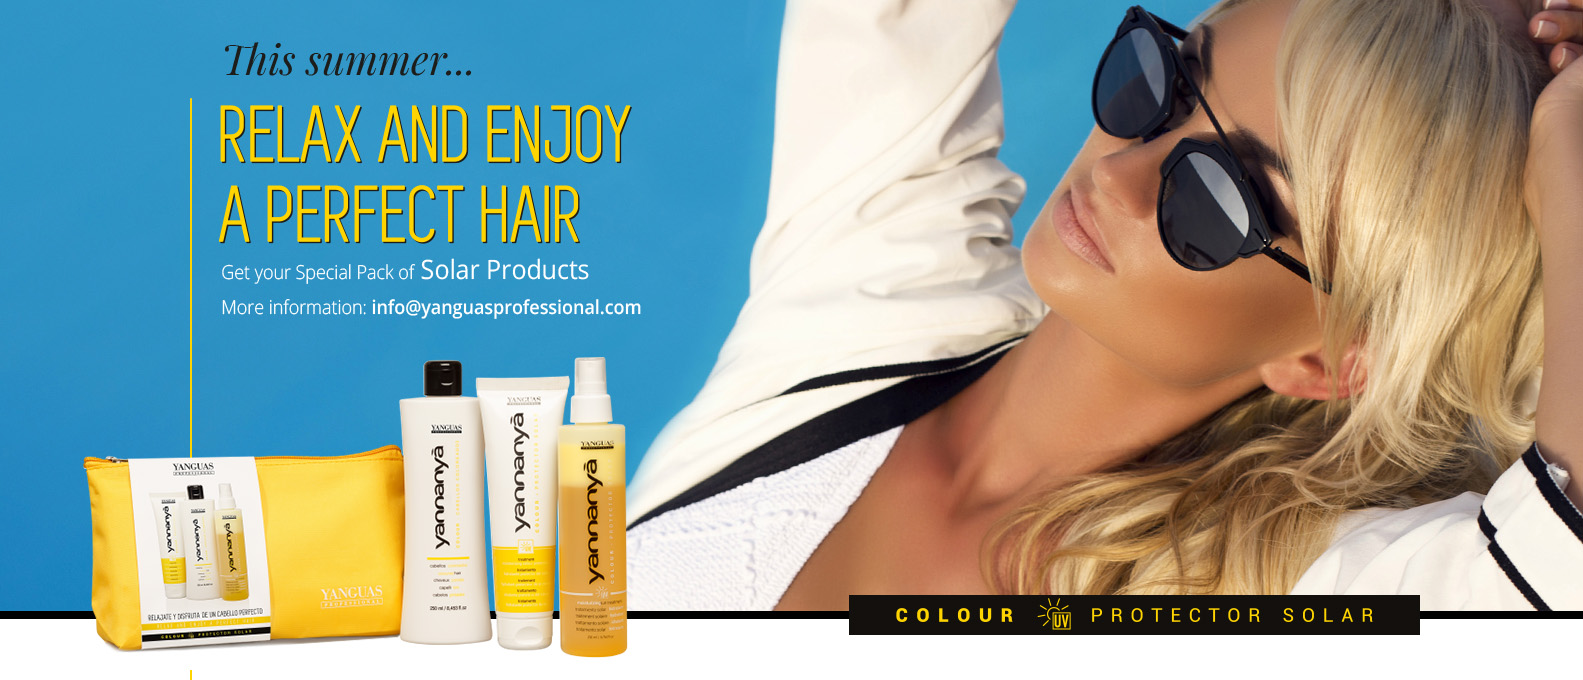 Color Solar Protect Products For Hair - Yanguas Professional